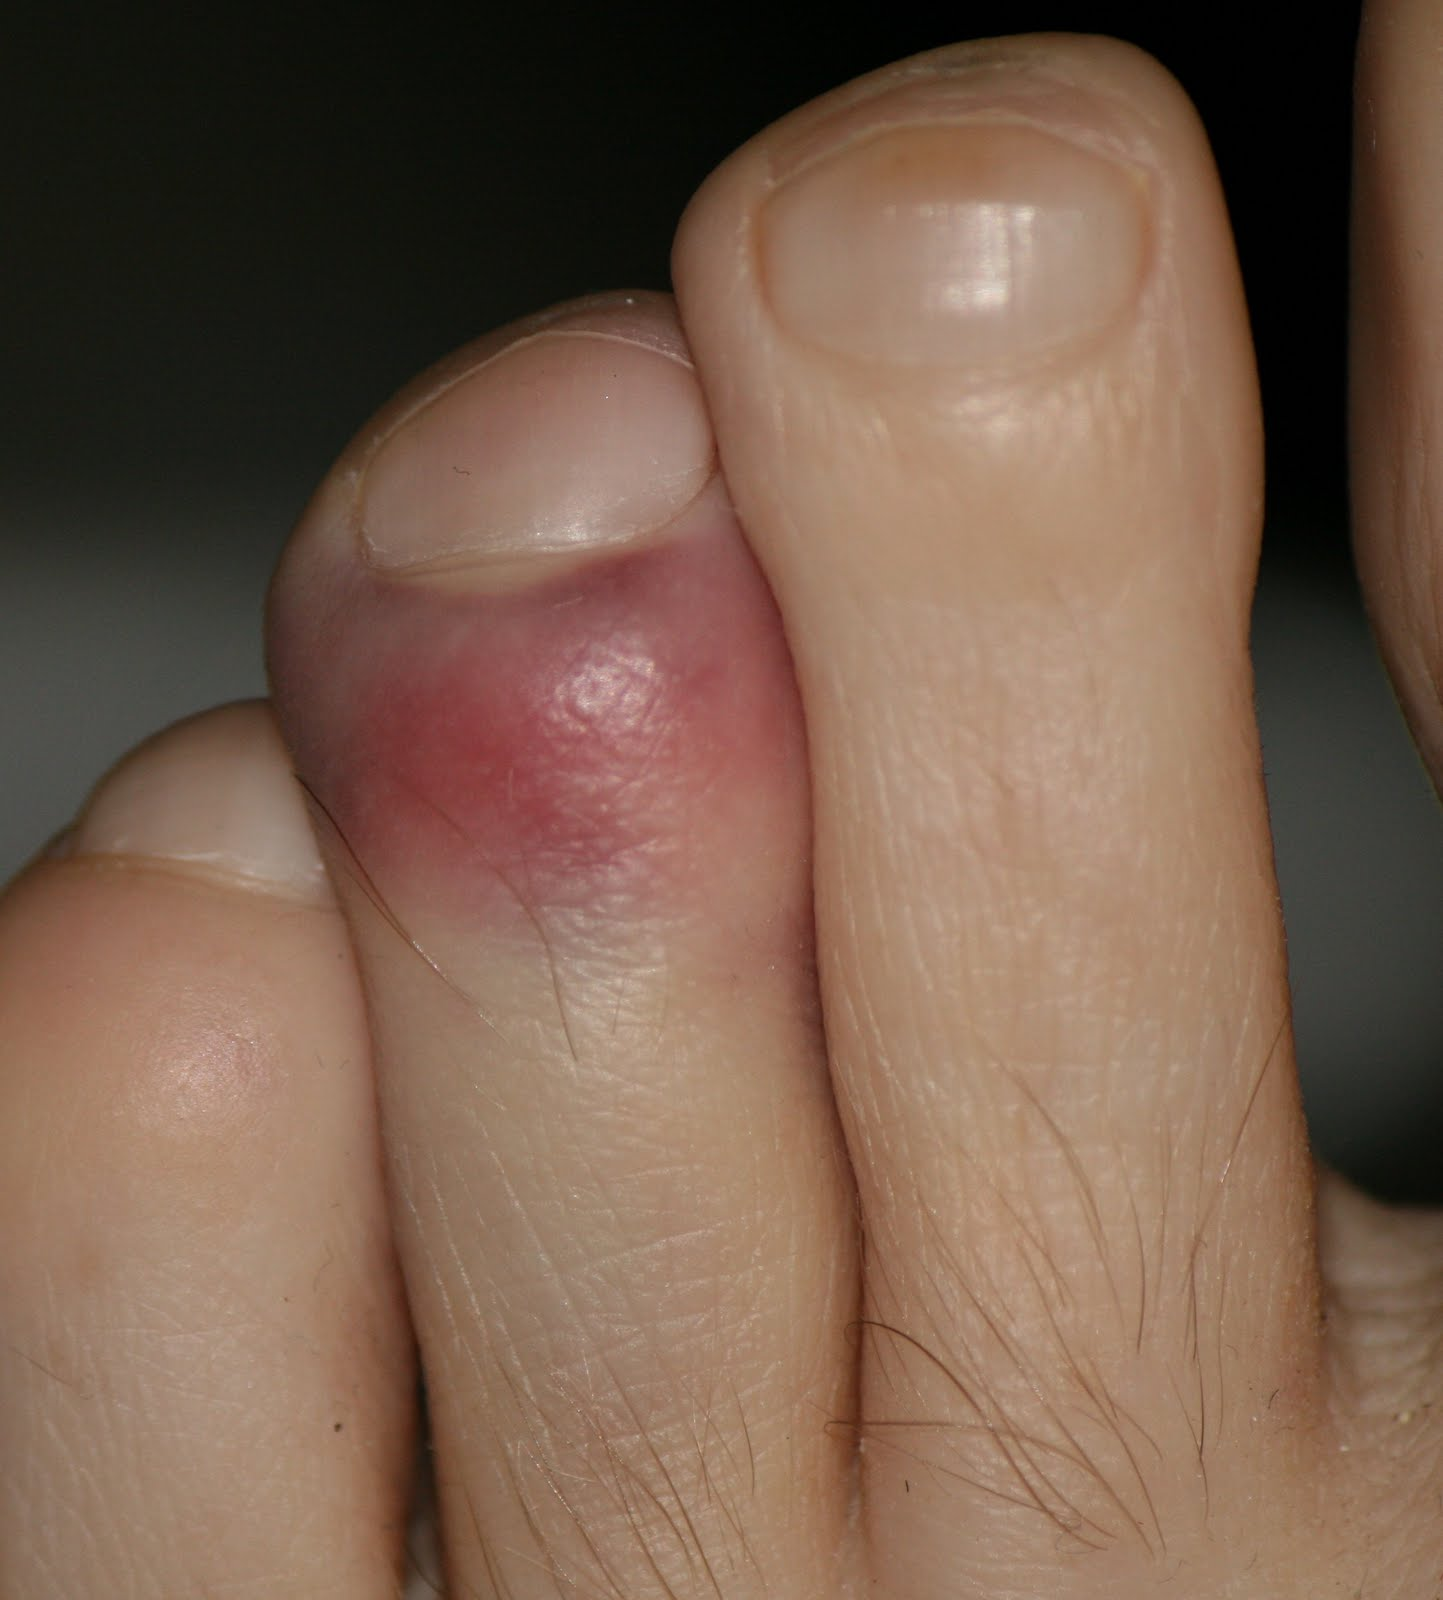 Macclads Blog: Left toe stubbed after right Ankle surgery